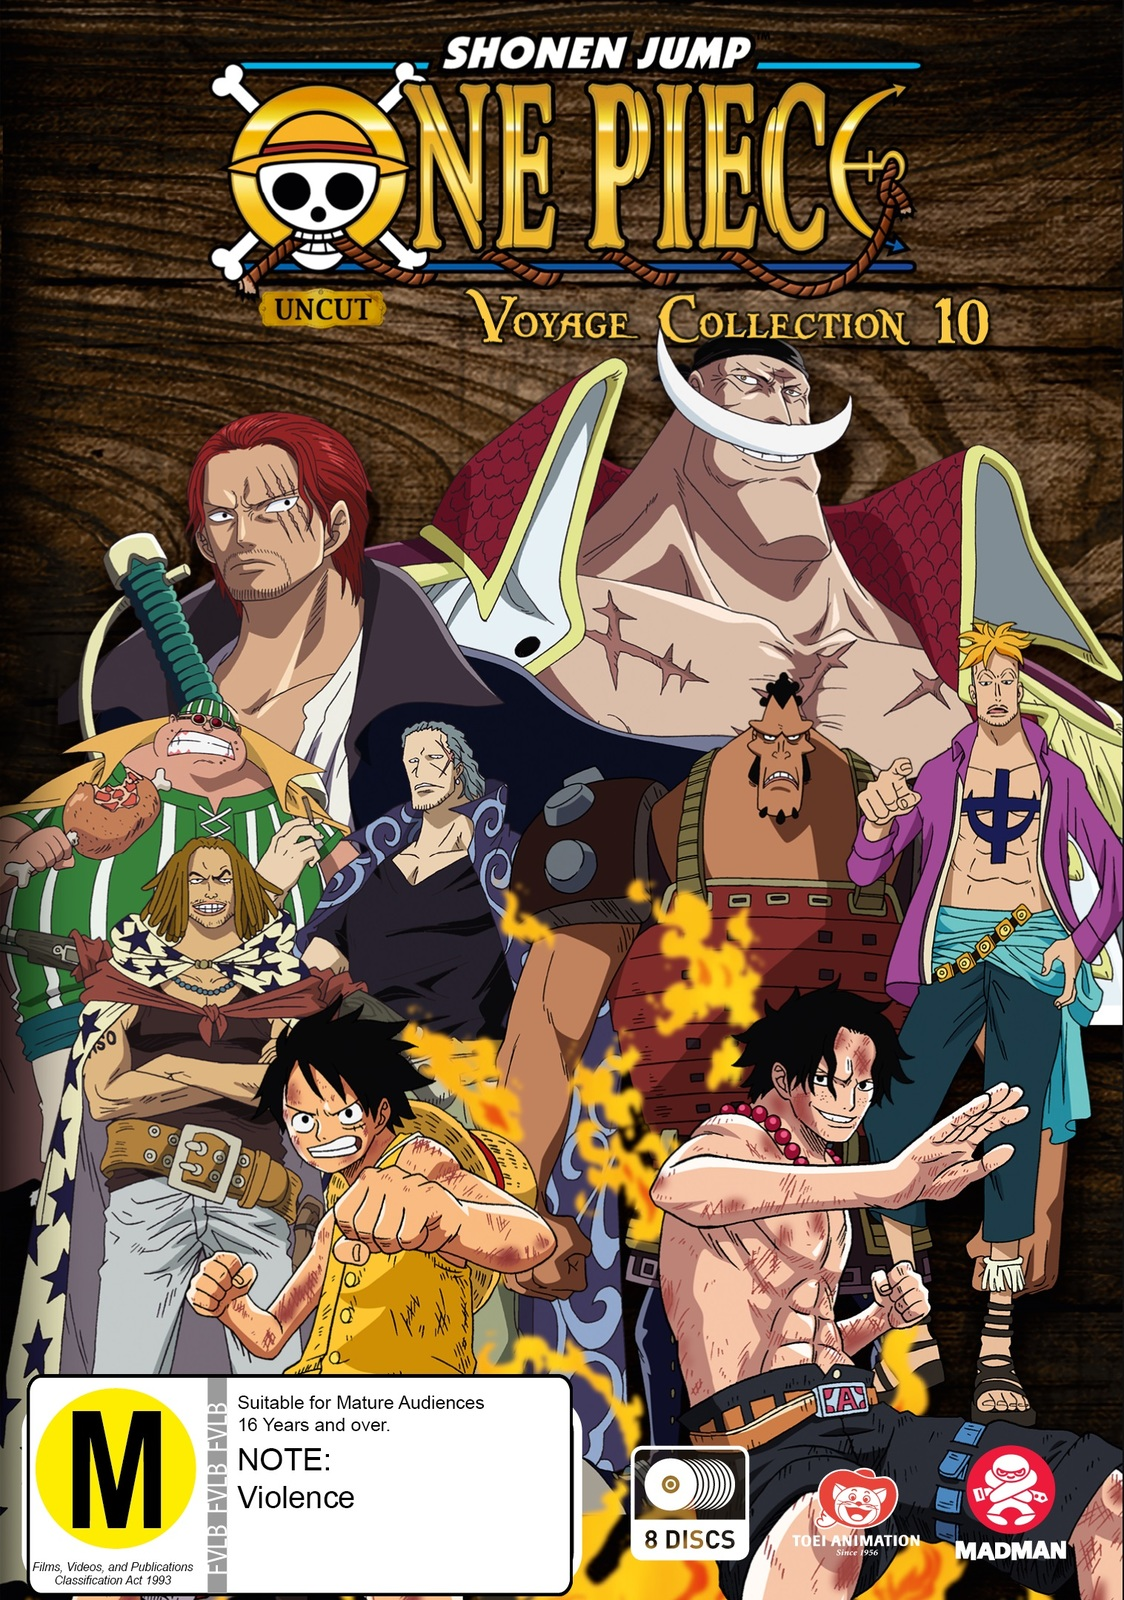 One Piece Voyage: Collection 10 (Episodes 446-491) image